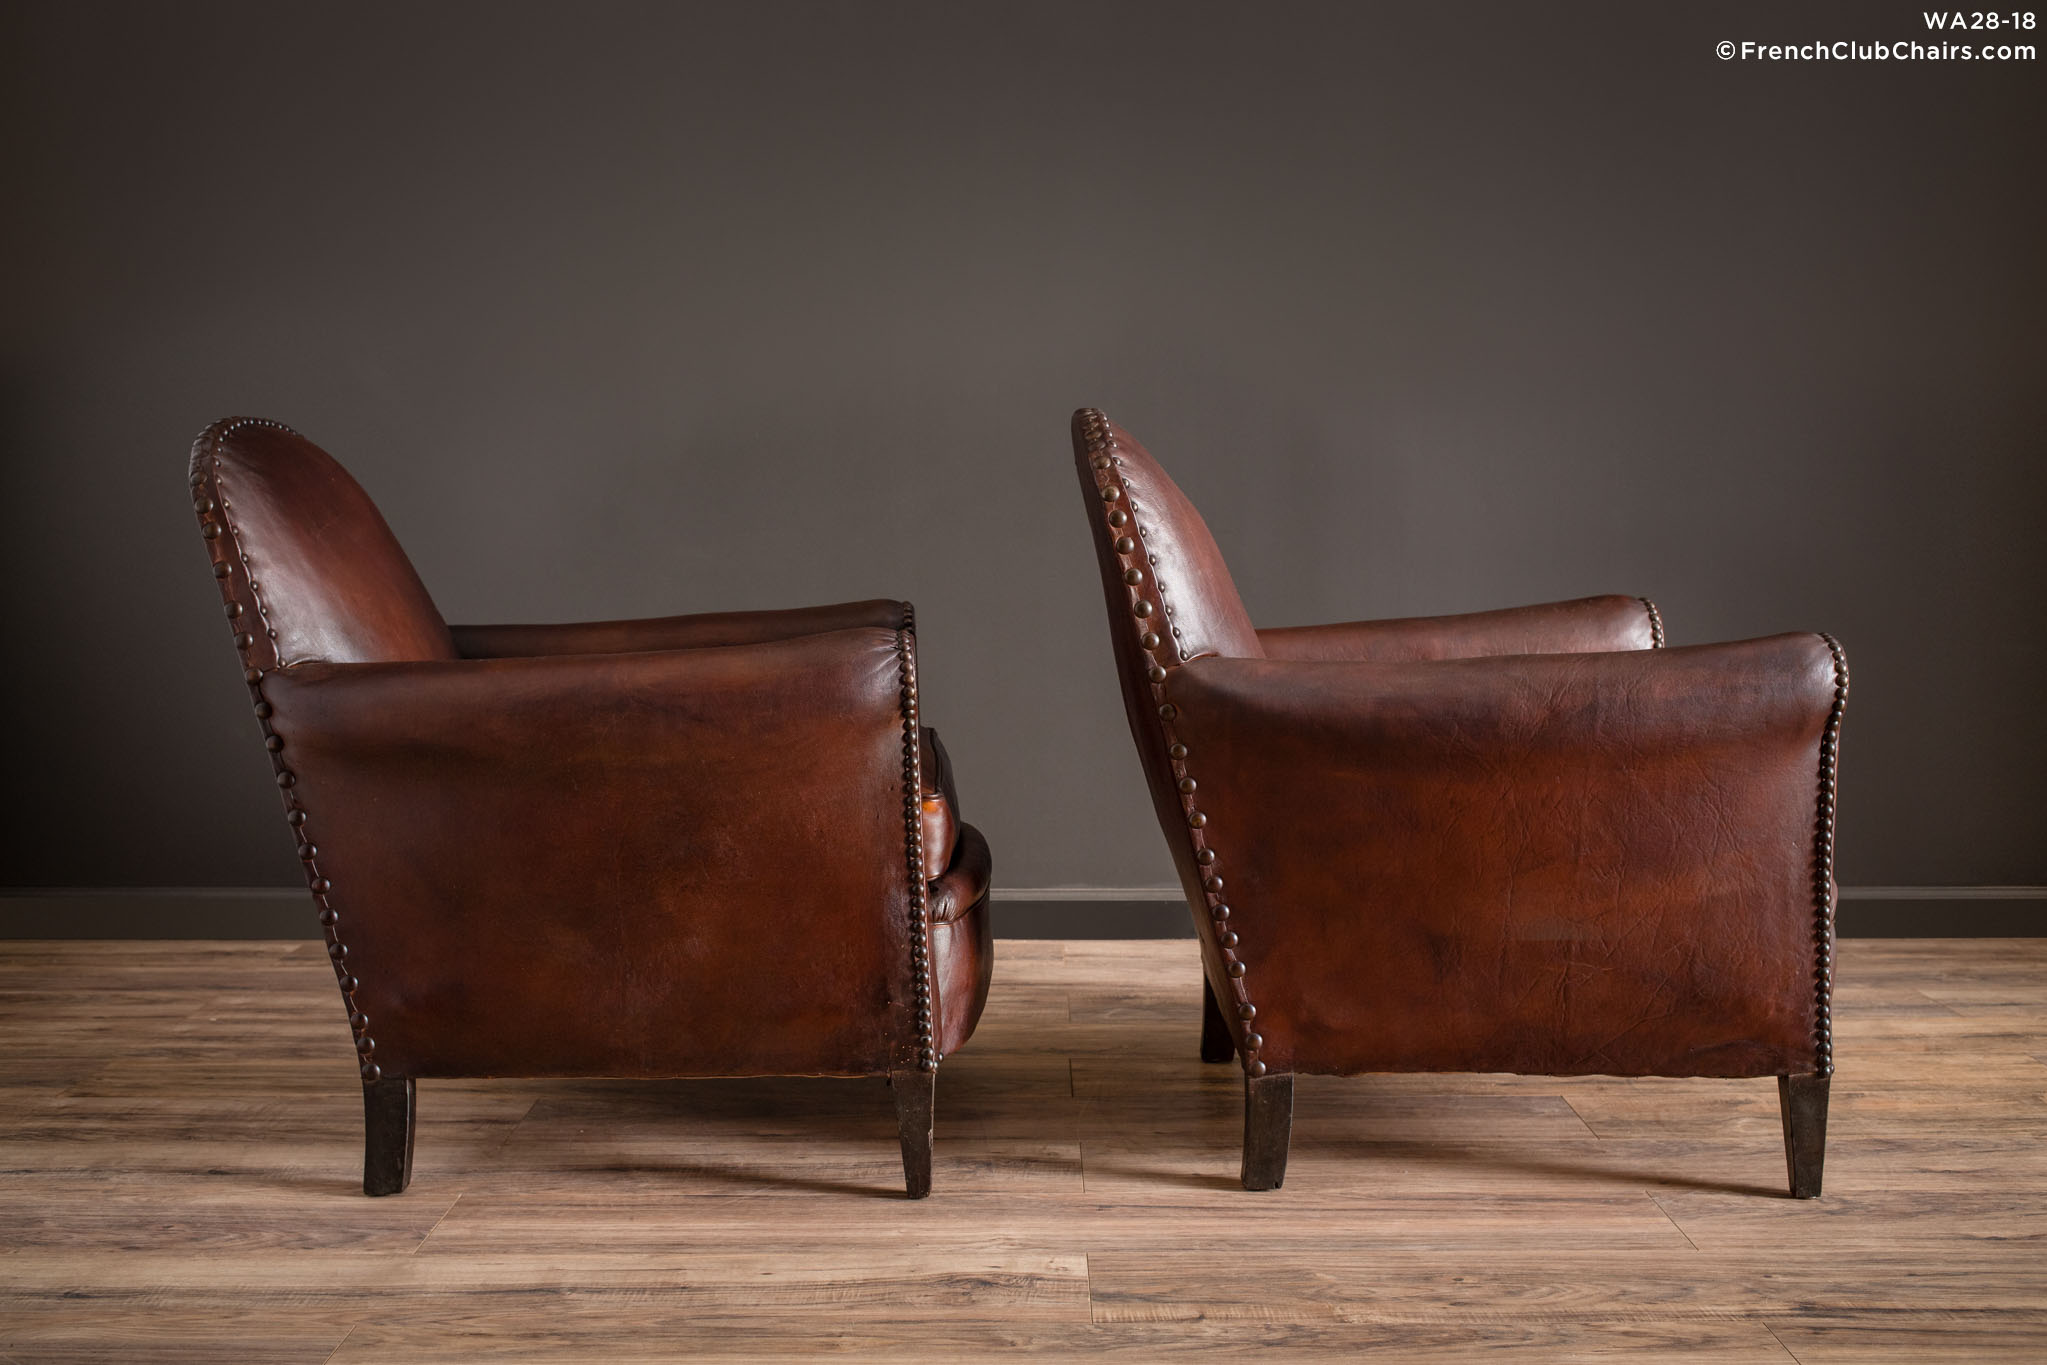 WA_28-18_Rambouillet_Dark_Library_Pair_R_3RT1-williams-antiks-leather-french-club-chair-wa_fcccom